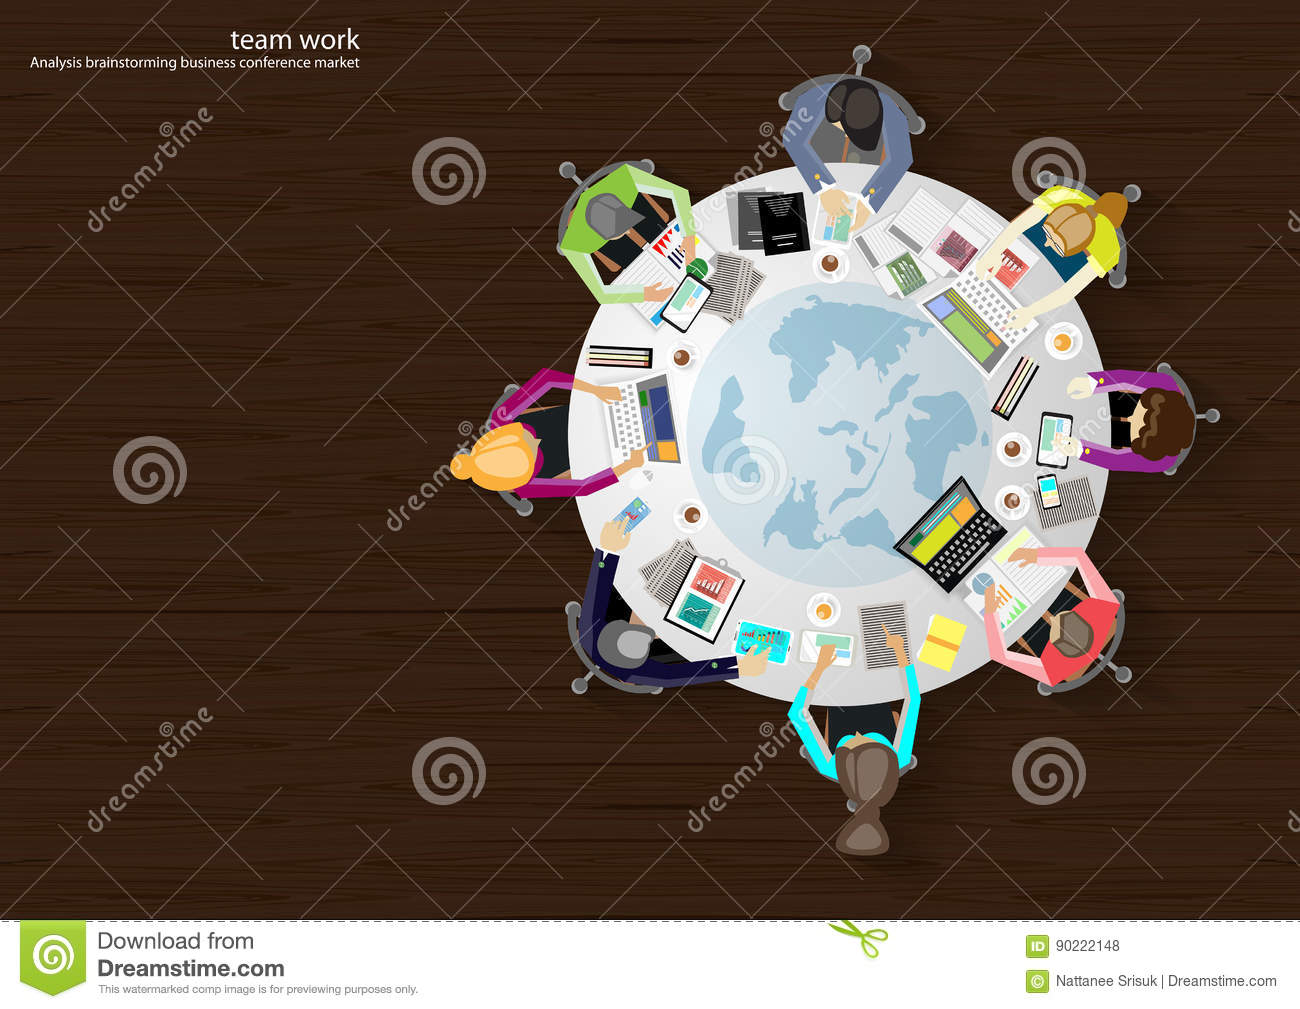 Vector business work places , teamwork, brainstorming, business analysis, marketing plan, a map of the world, paper files, mobile